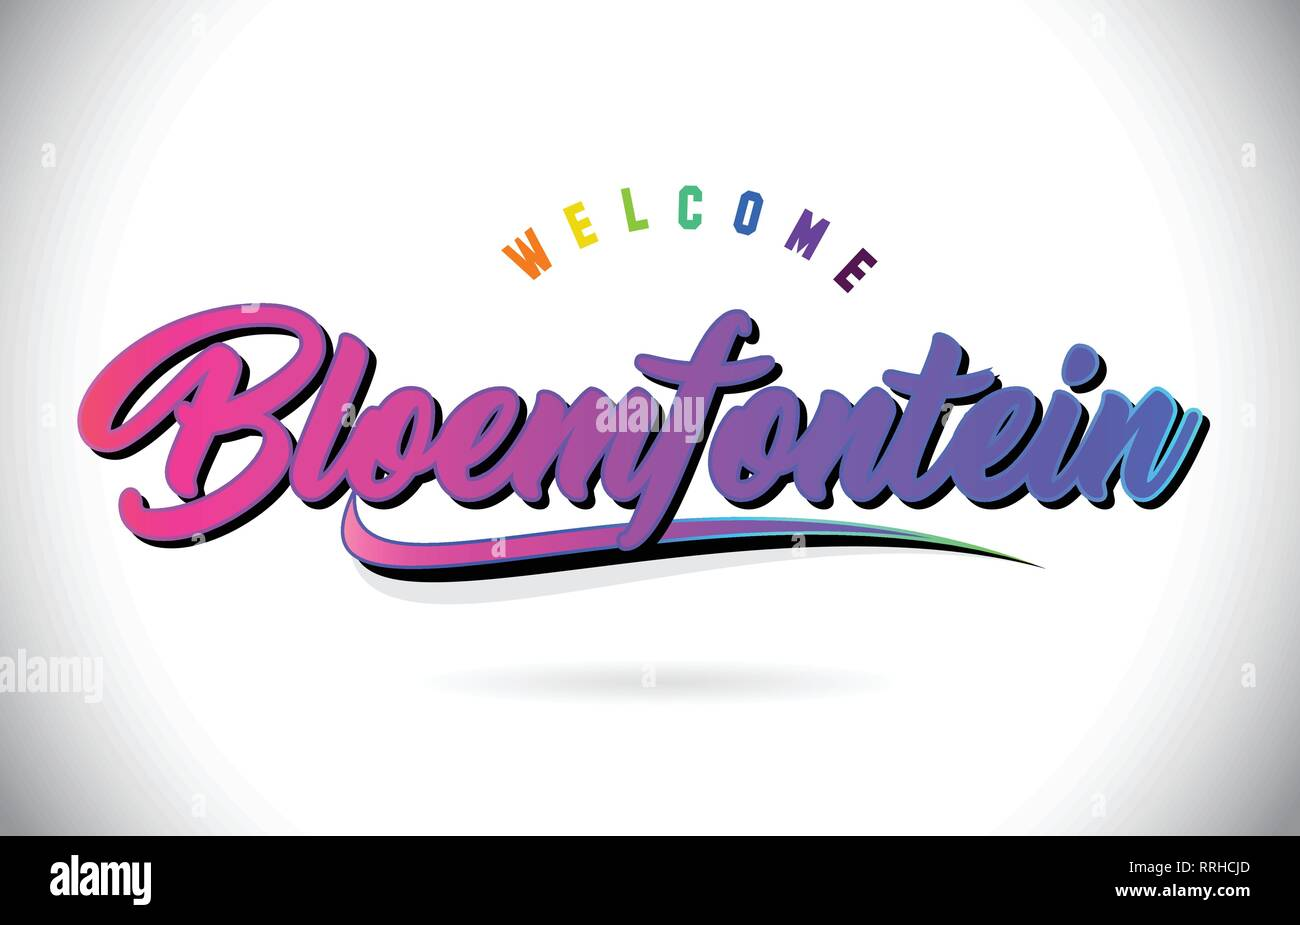 Bloemfontein Welcome To Word Text with Creative Purple Pink Handwritten Font and Swoosh Shape Design Vector Illustration. - Stock Image